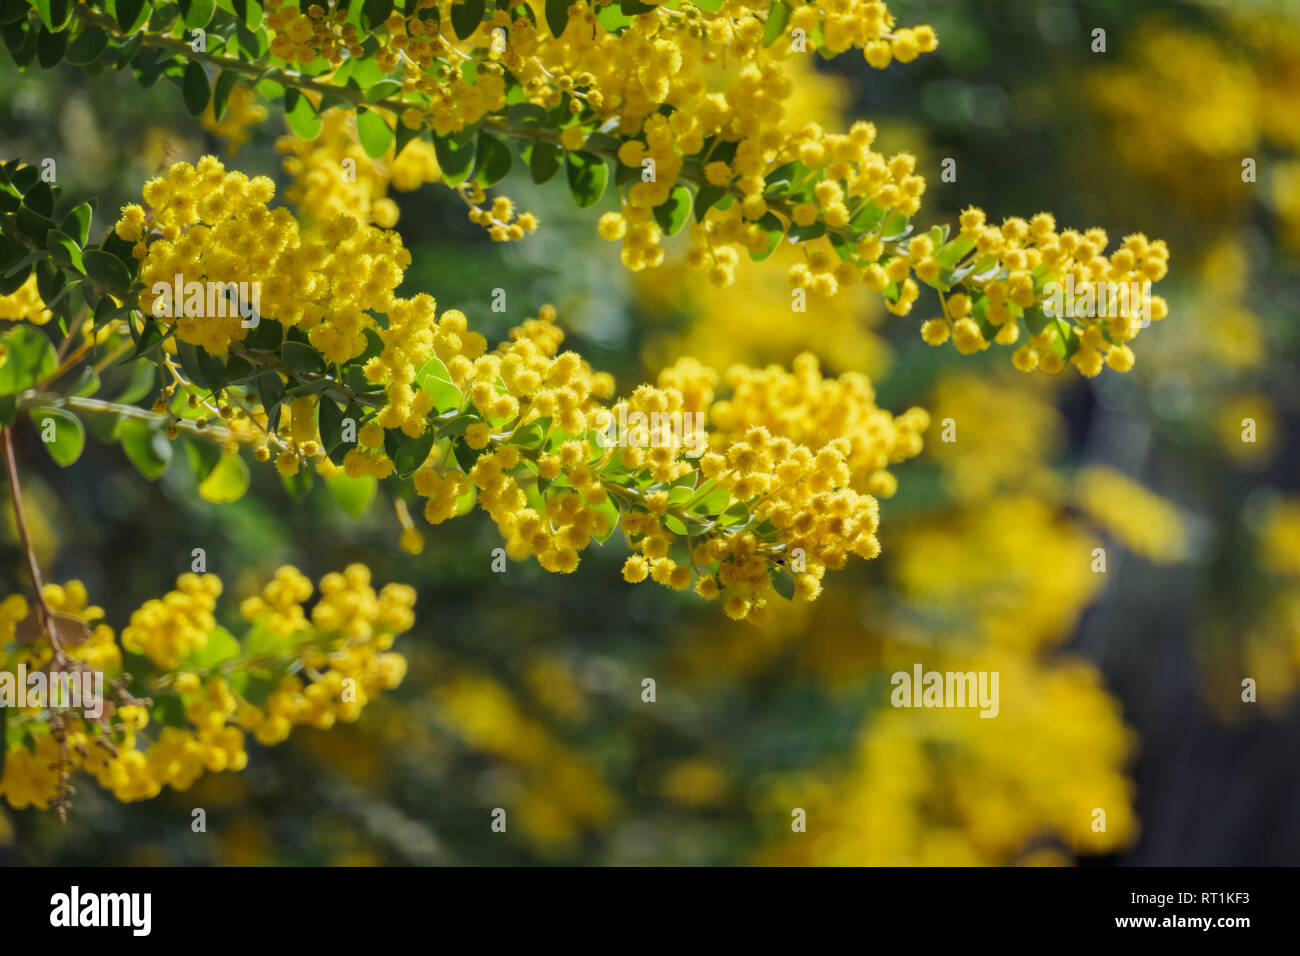 The beautiful Acacia chinchillensis (chinchilla wattle) blossom at Los Angeles, California - Stock Image